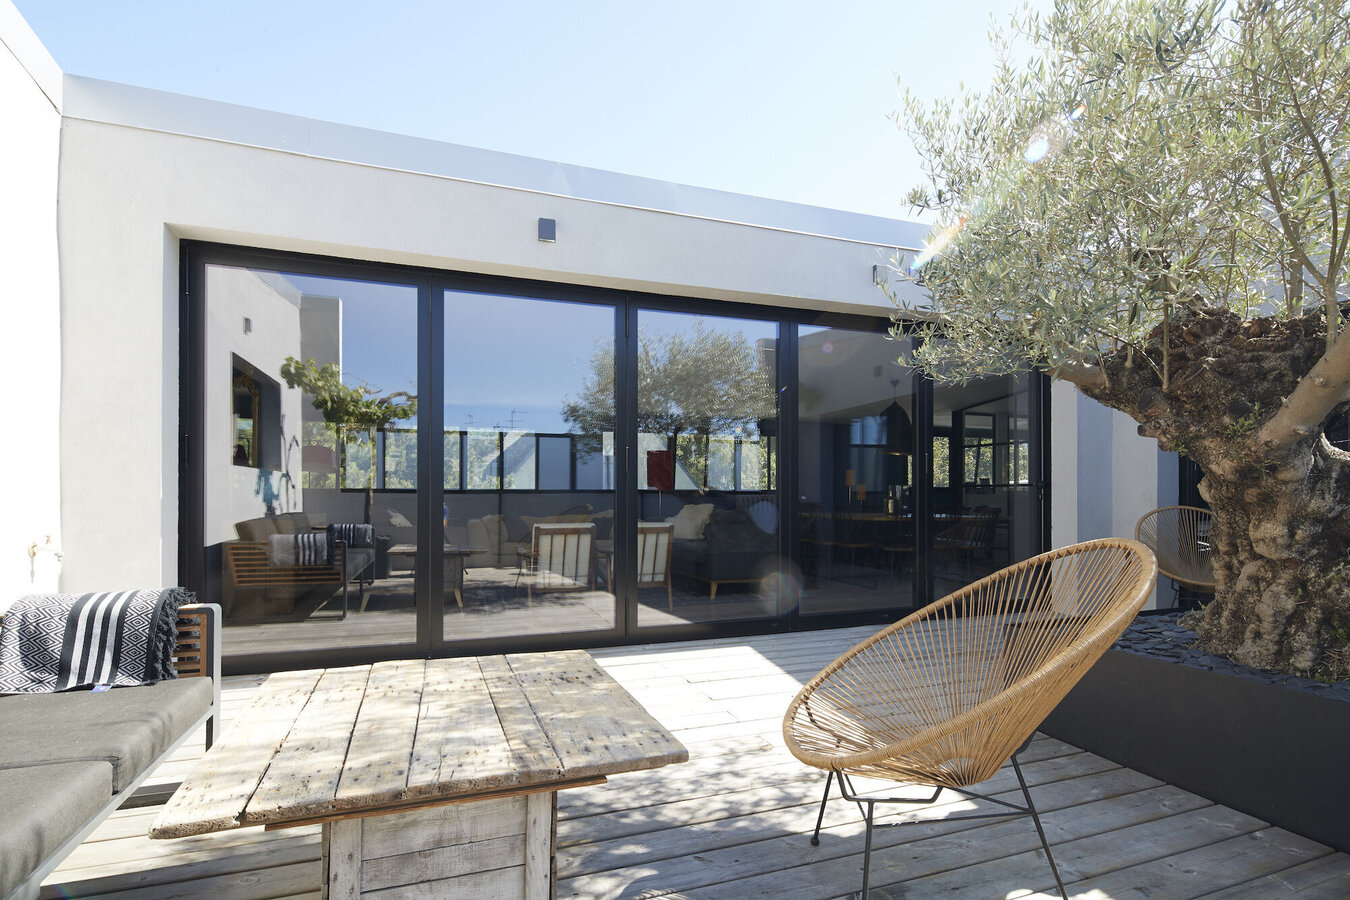 CP 68 Sliding Systems and CF 77 Sliding Systems - House Maison Privée - Le Pouliguen located in France